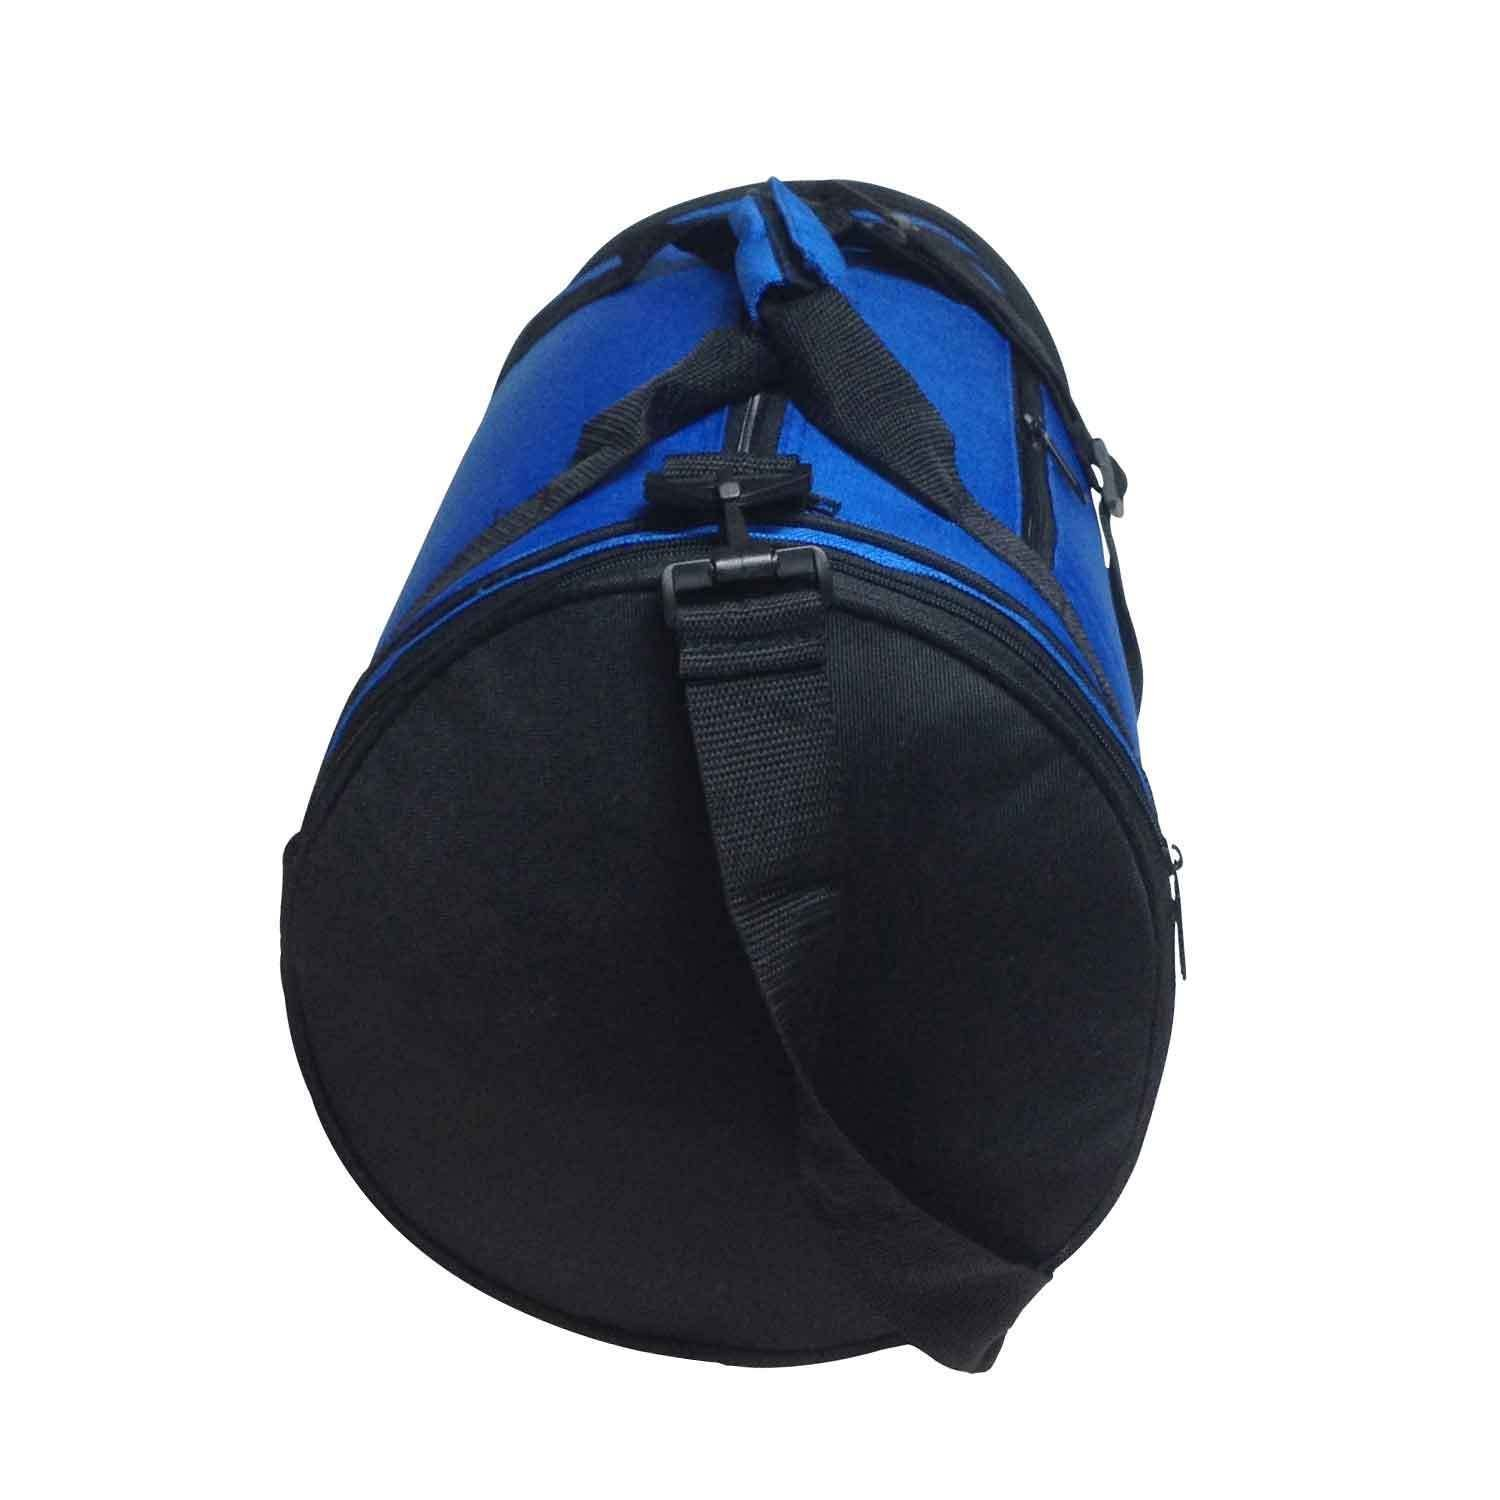 ImpecGear Travel Sports Gym Duffel Duffle Bag Camping Hiking Bag 18 Round Roll Bags